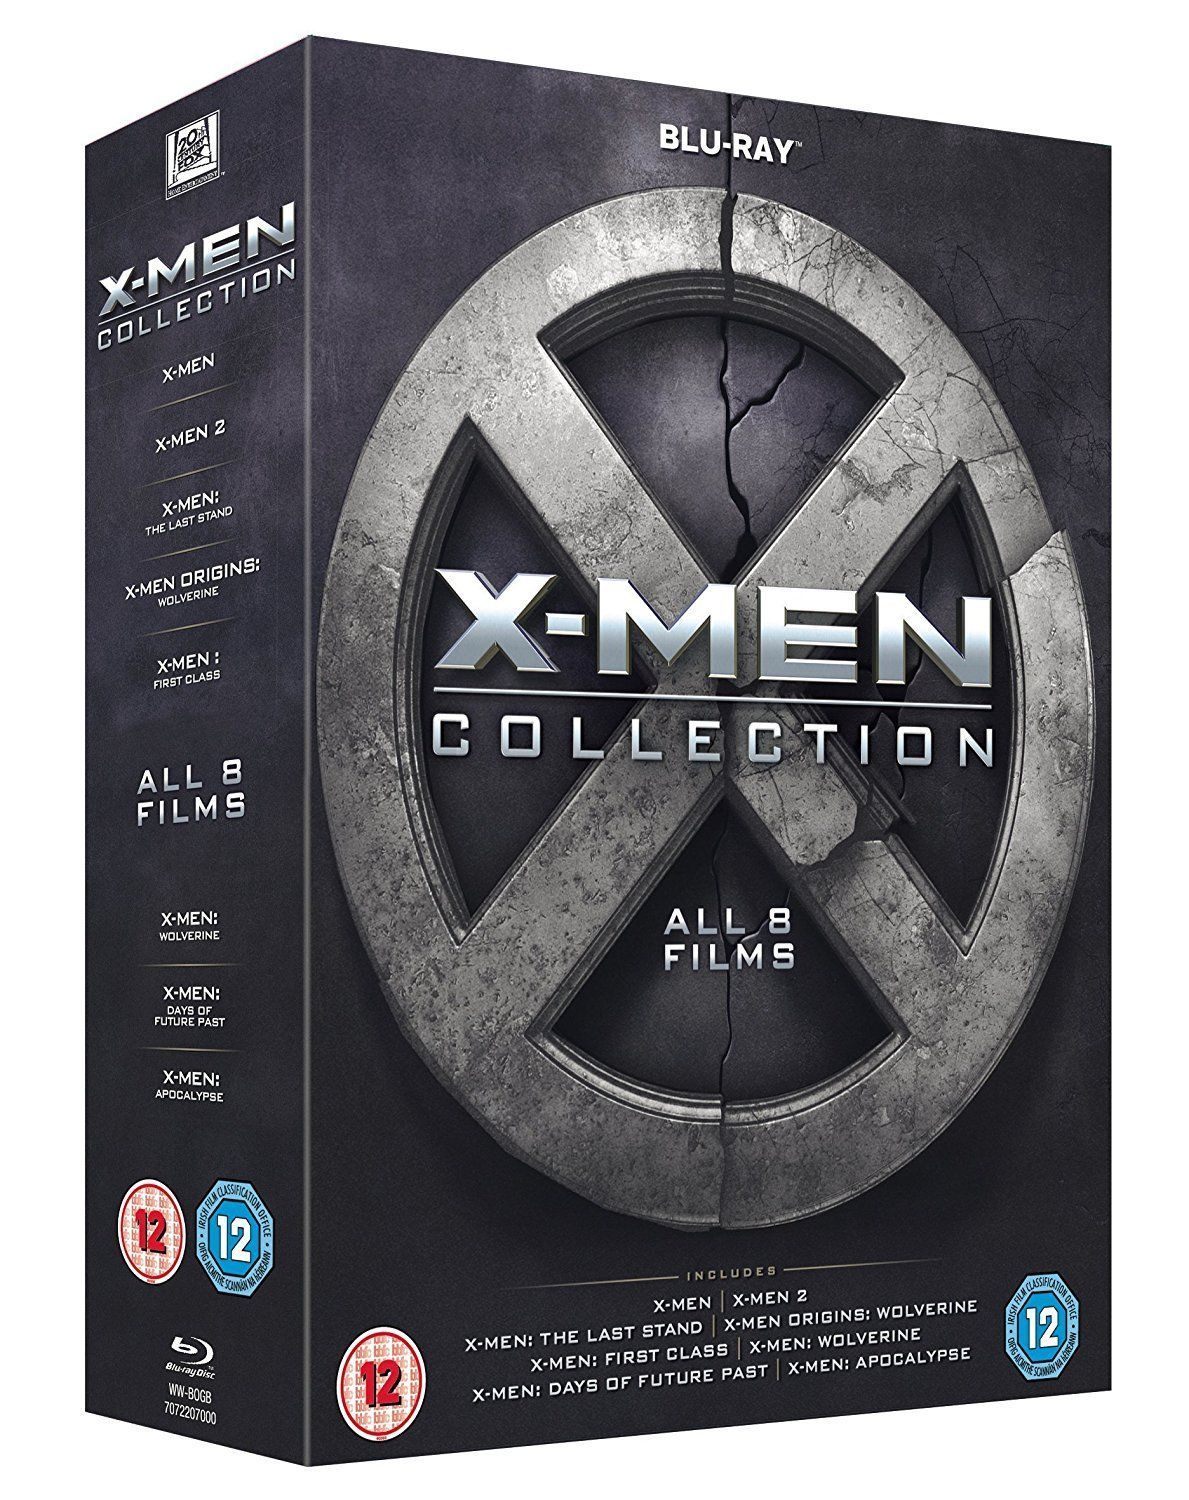 X Men Collection All 8 Films Box Set 1 8 Blu Ray 8 Discs Region Free New X Men Boxset Blu Ray Discs